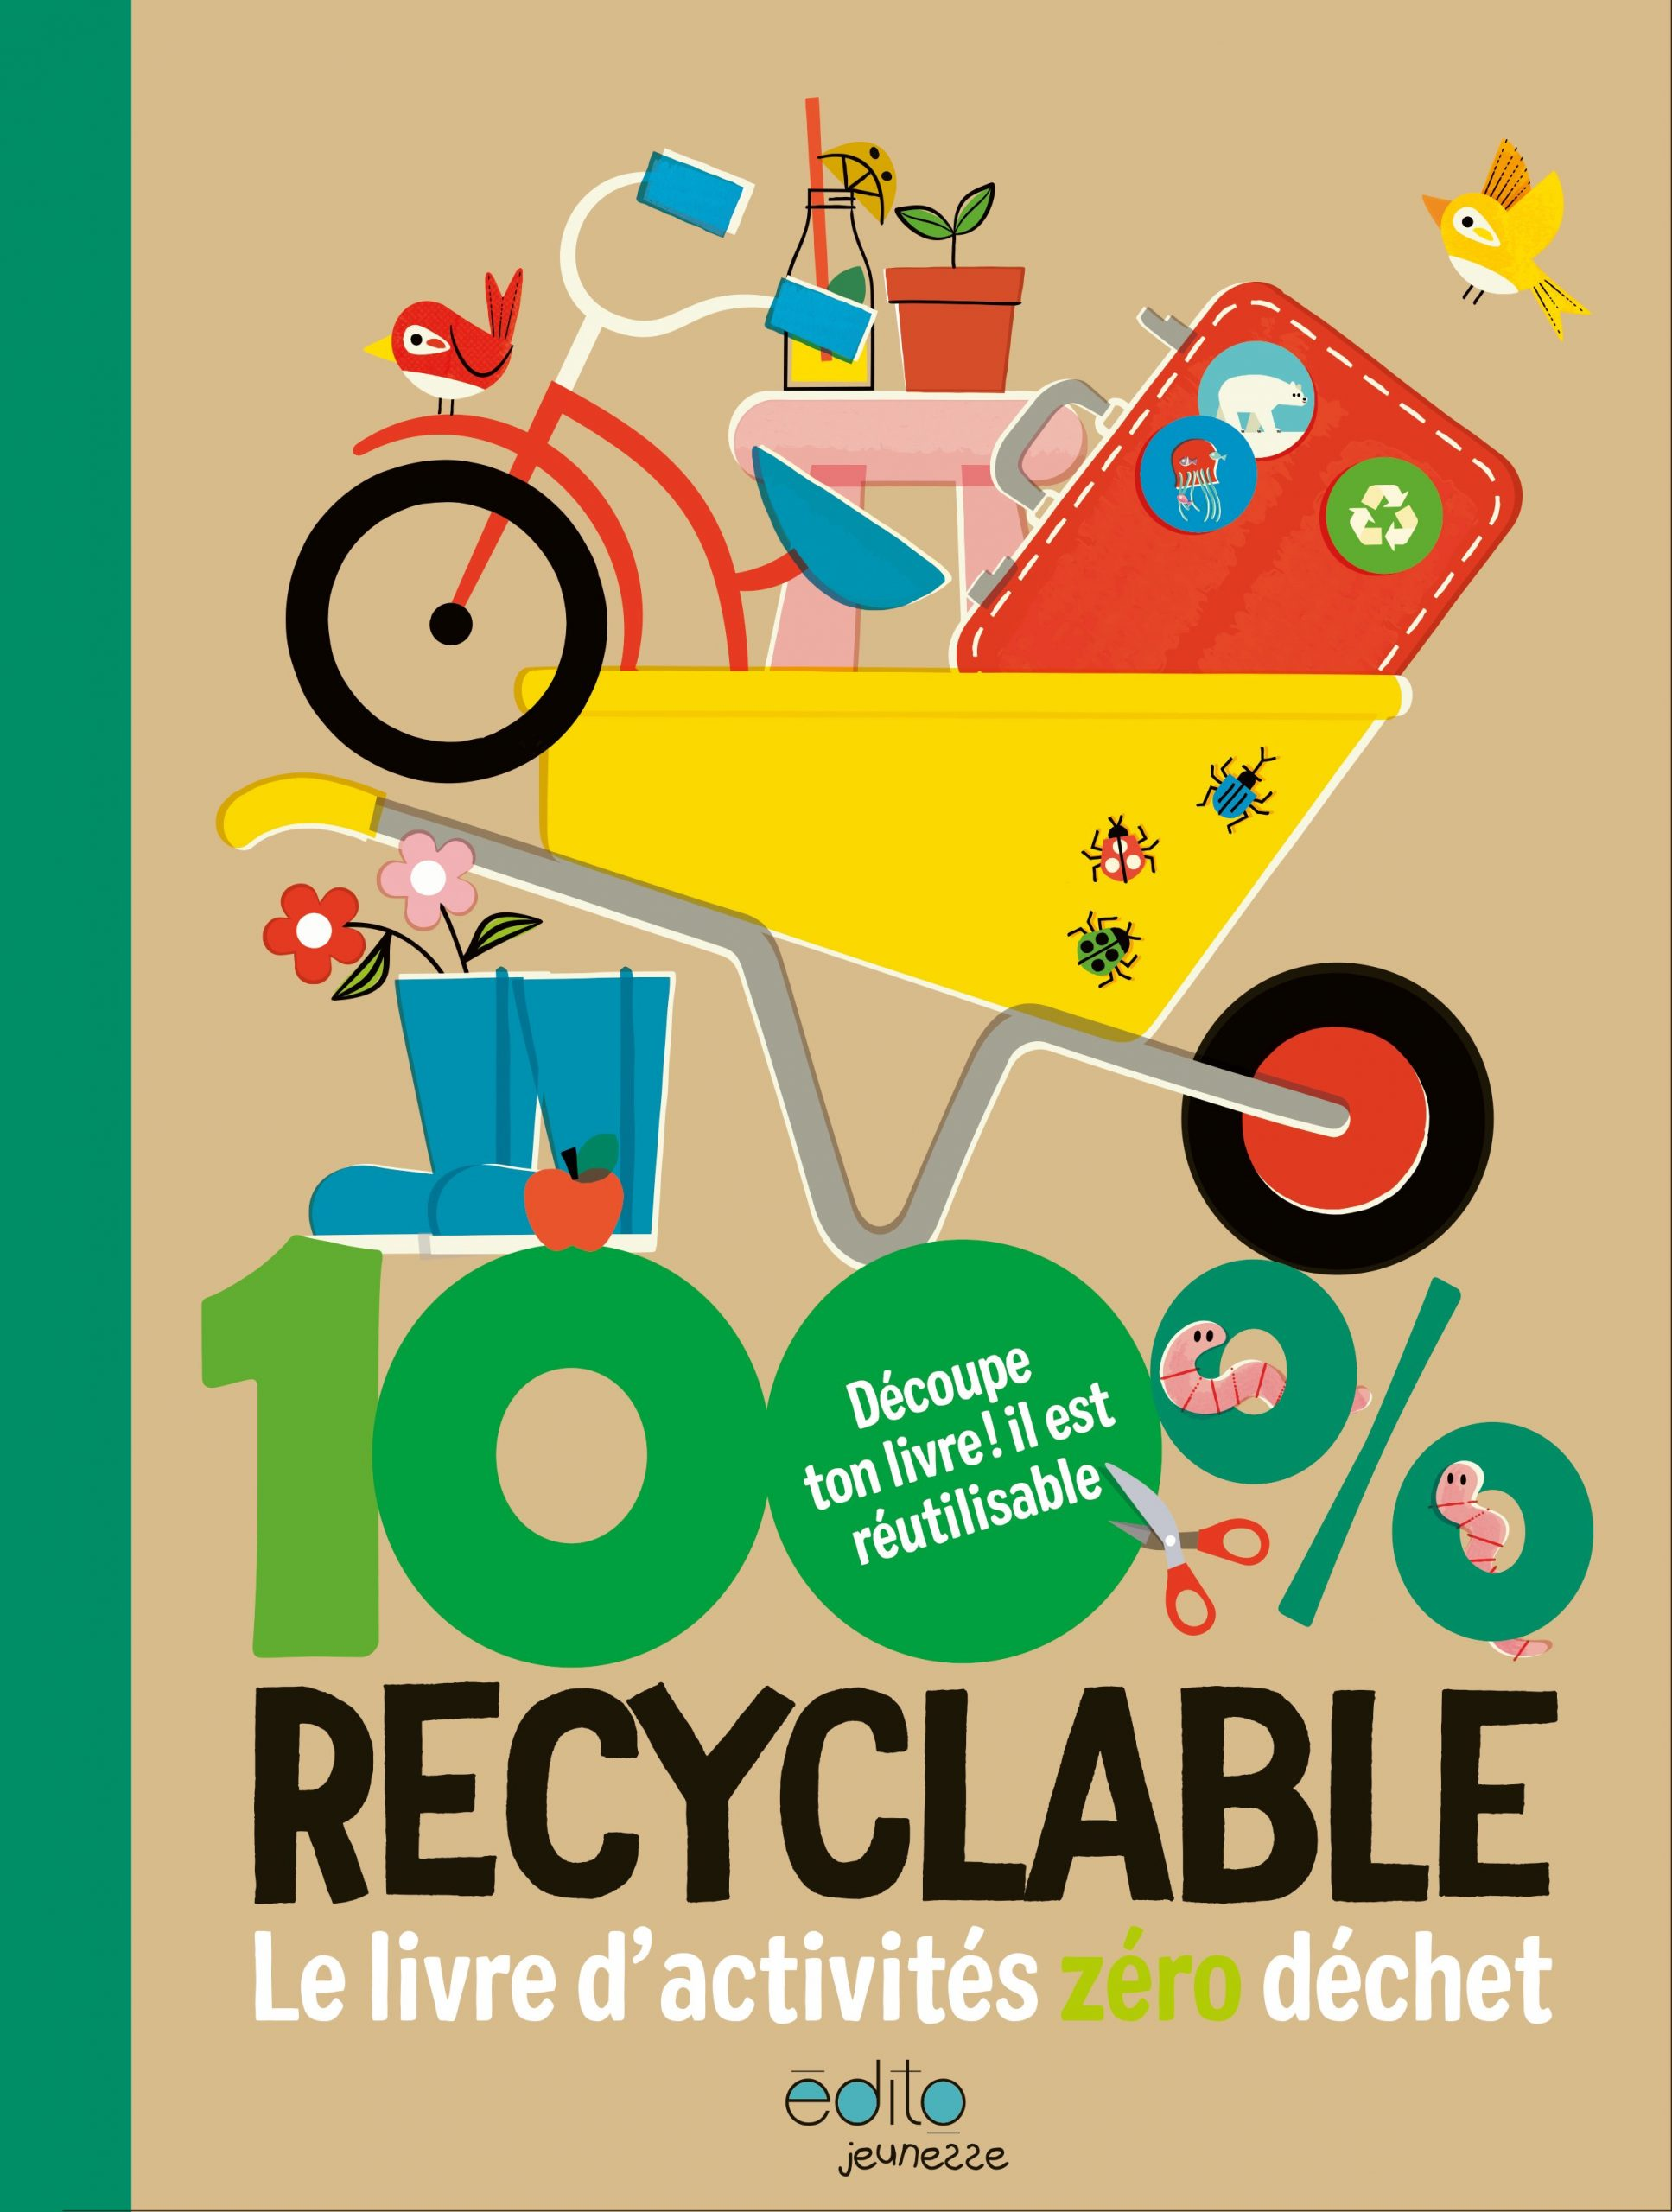 100% recyclable Image